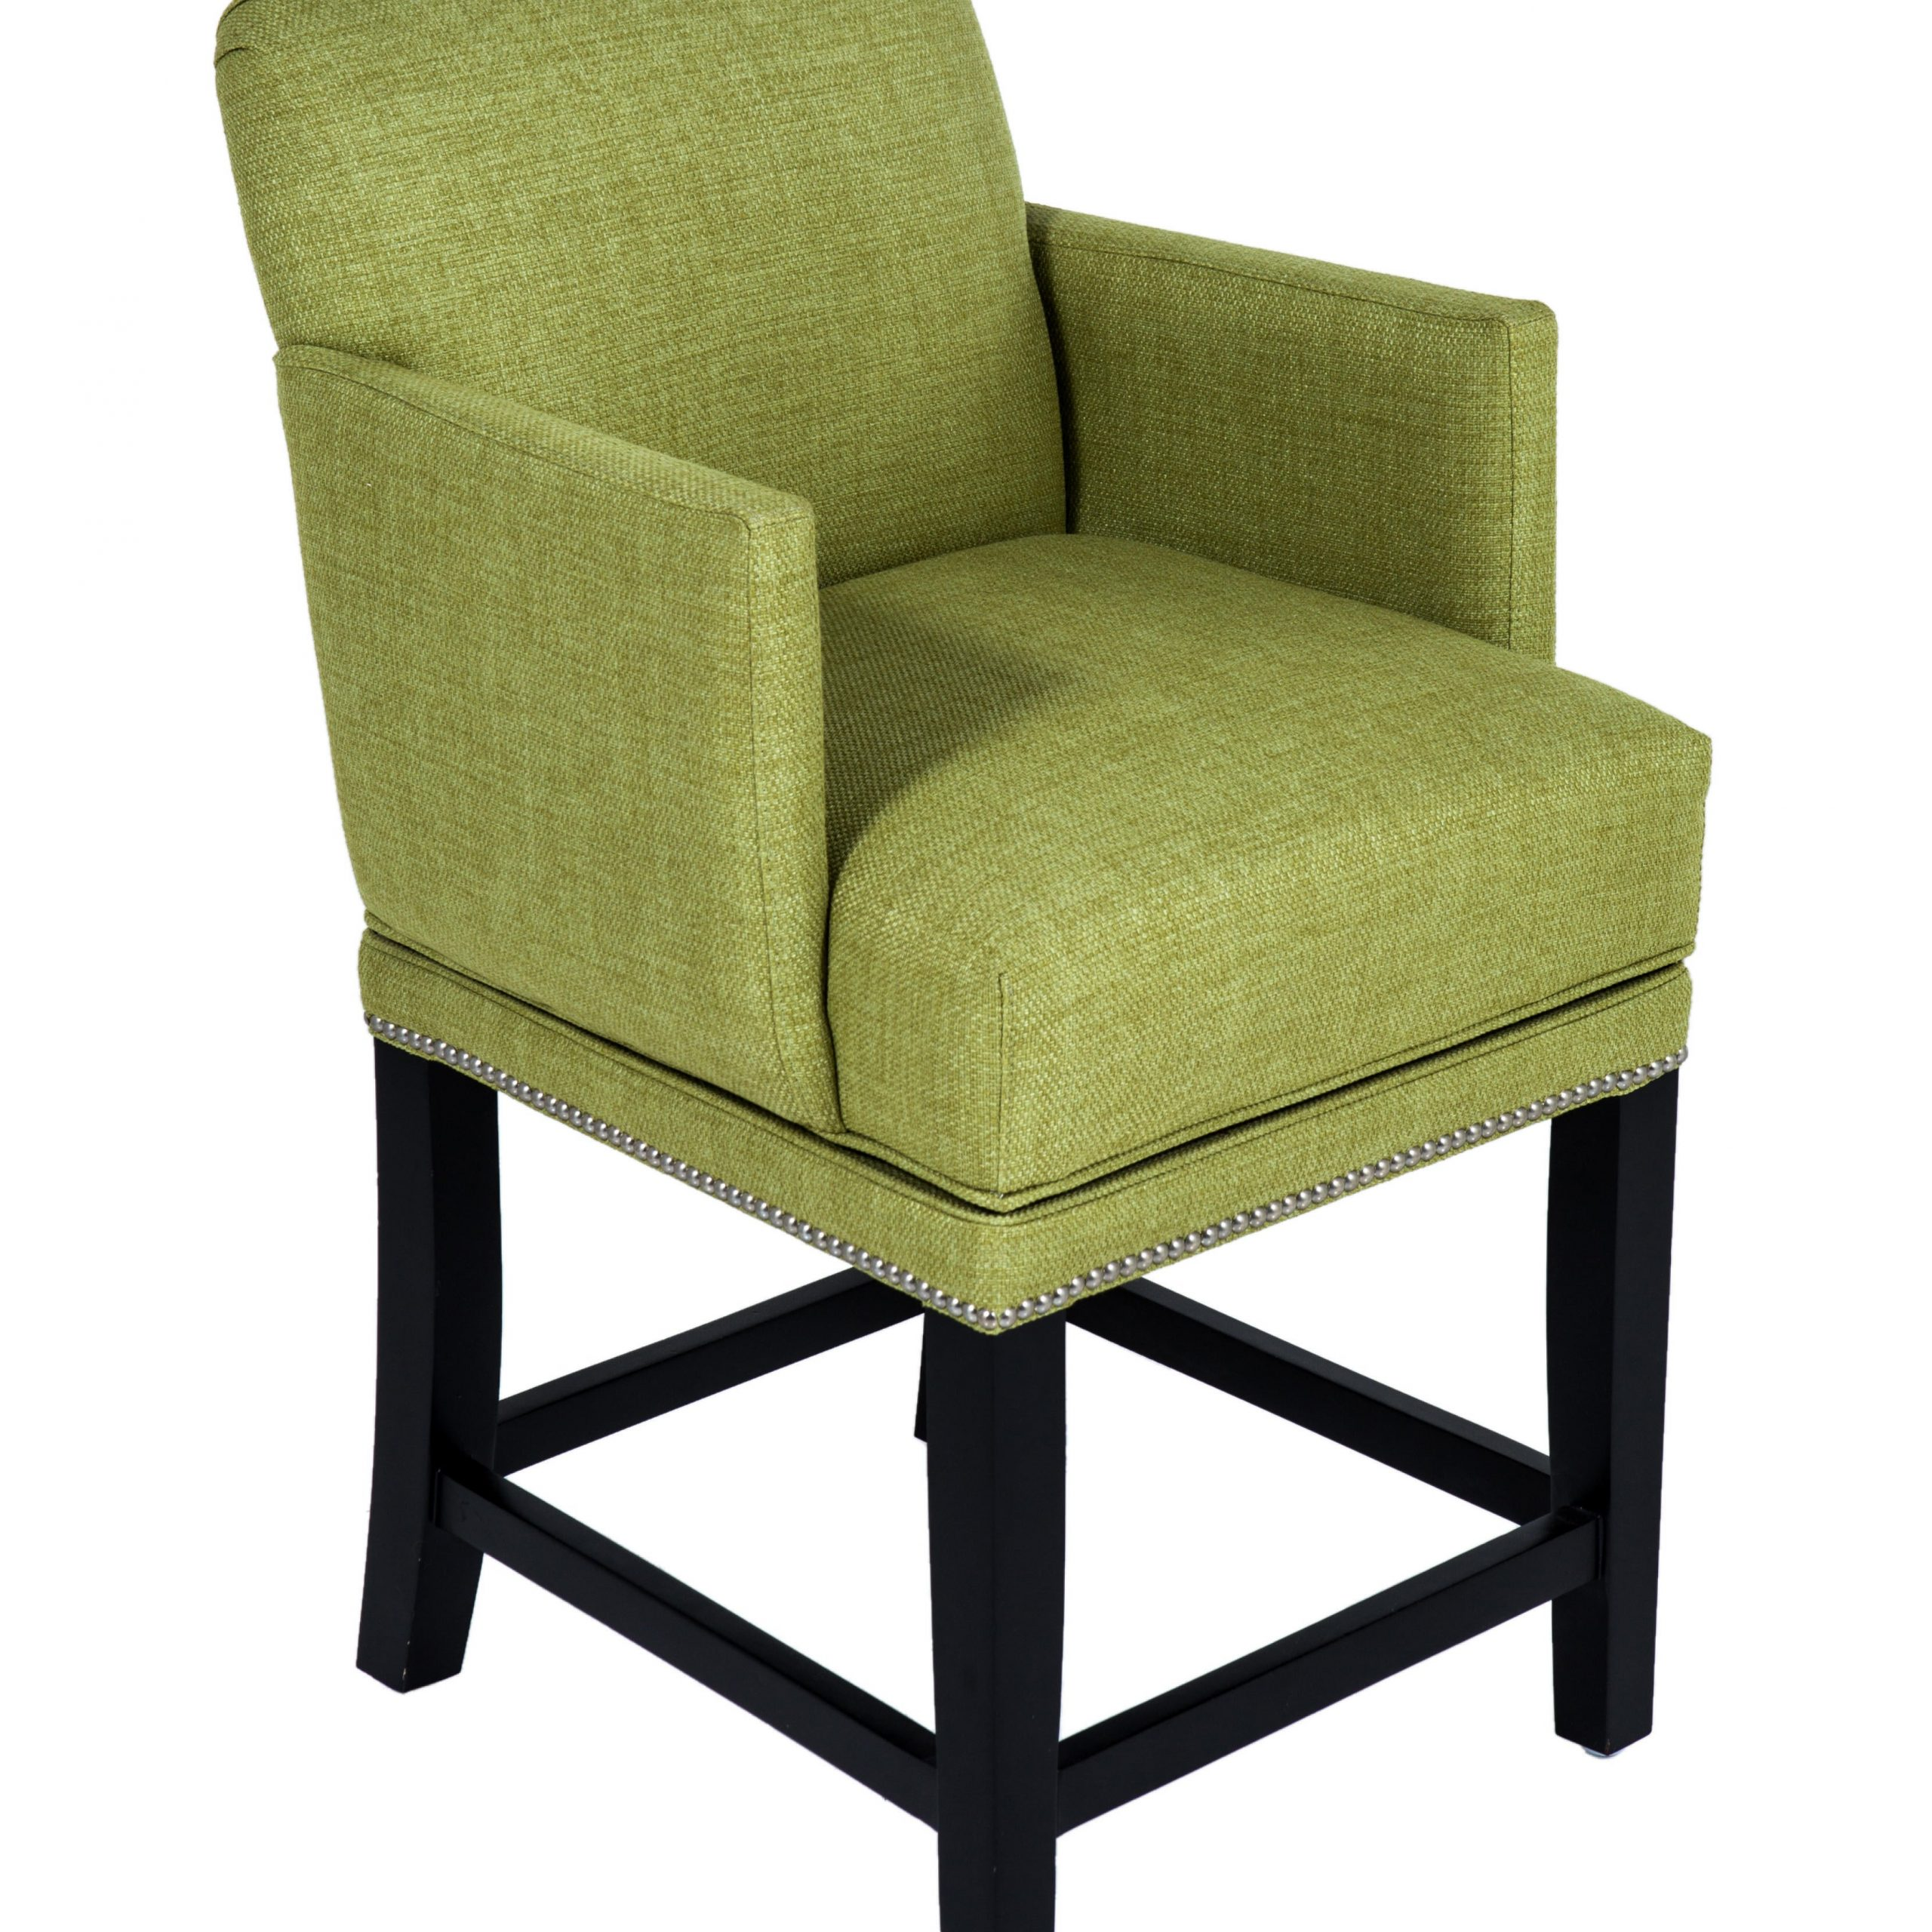 Chair Set Of Three Upholstered Swivel Chairs – Furniture Throughout Swivel Sofa Chairs (View 3 of 15)